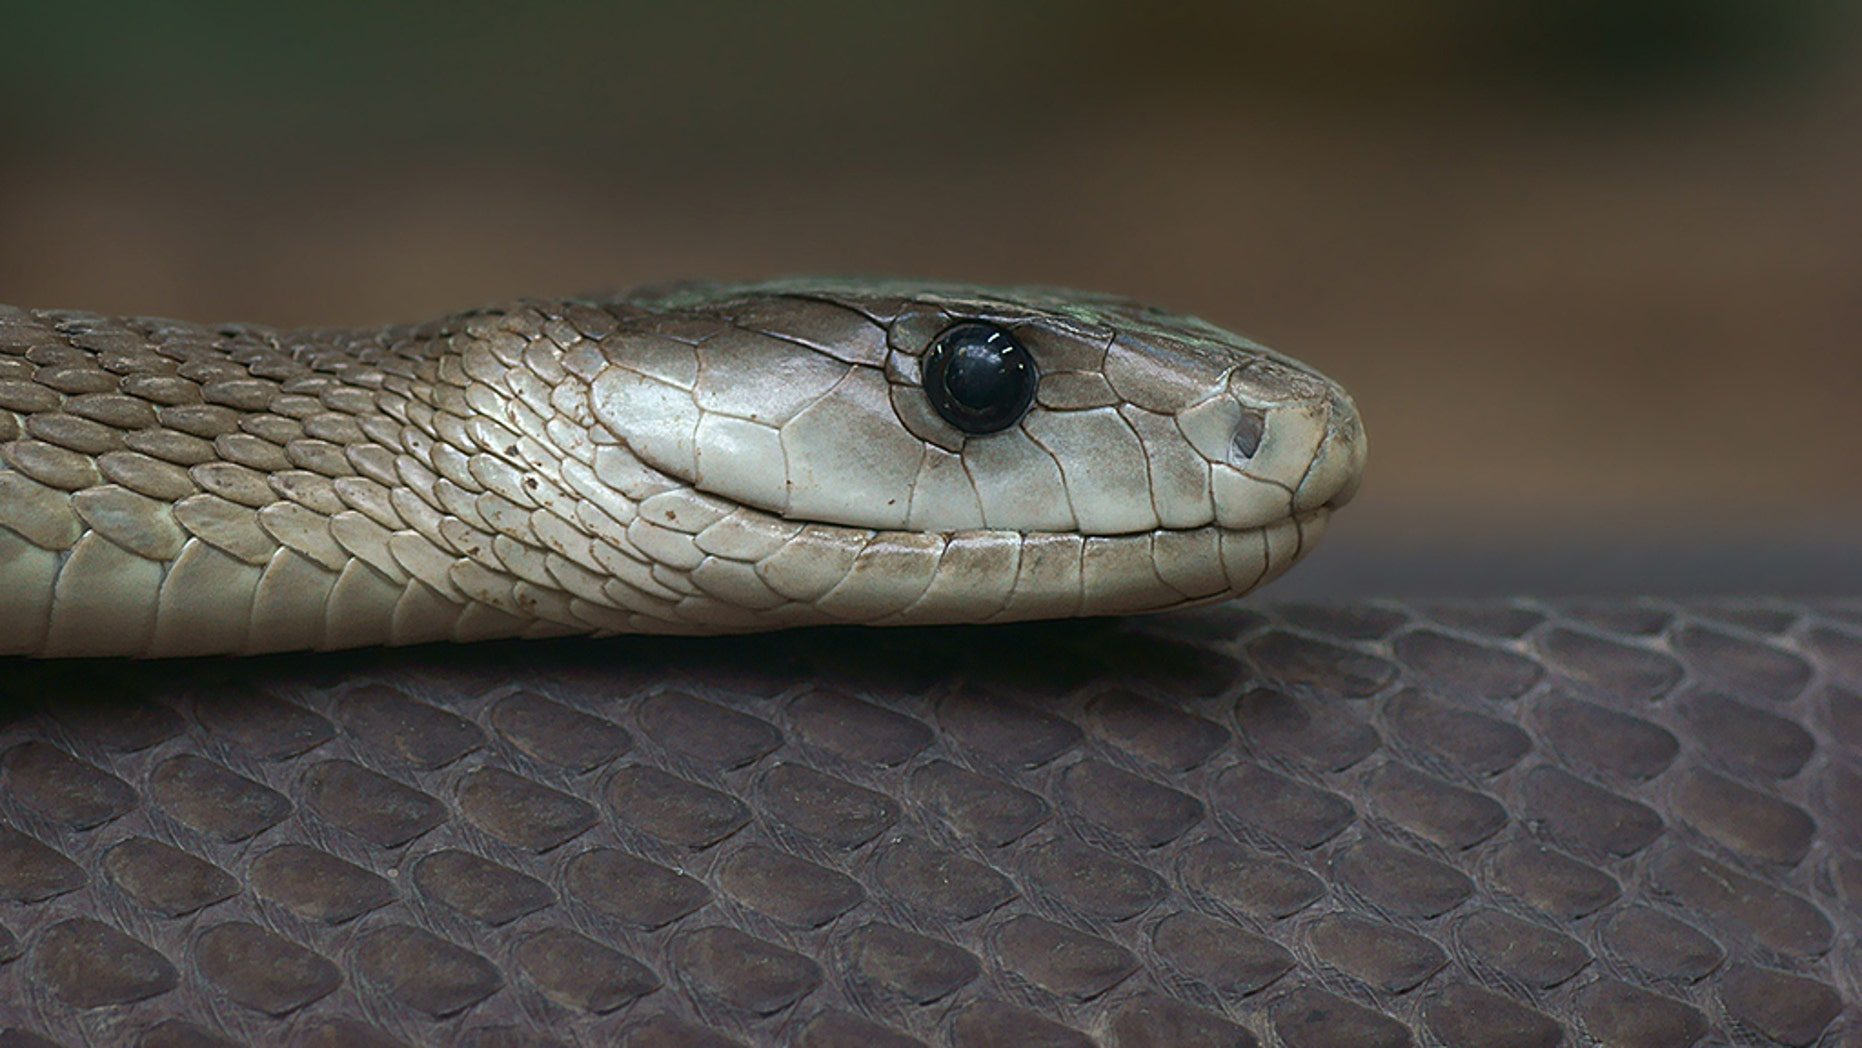 The Indianapolis Zoo is slated to add the black mamba snake to its exhibit in May 2019.